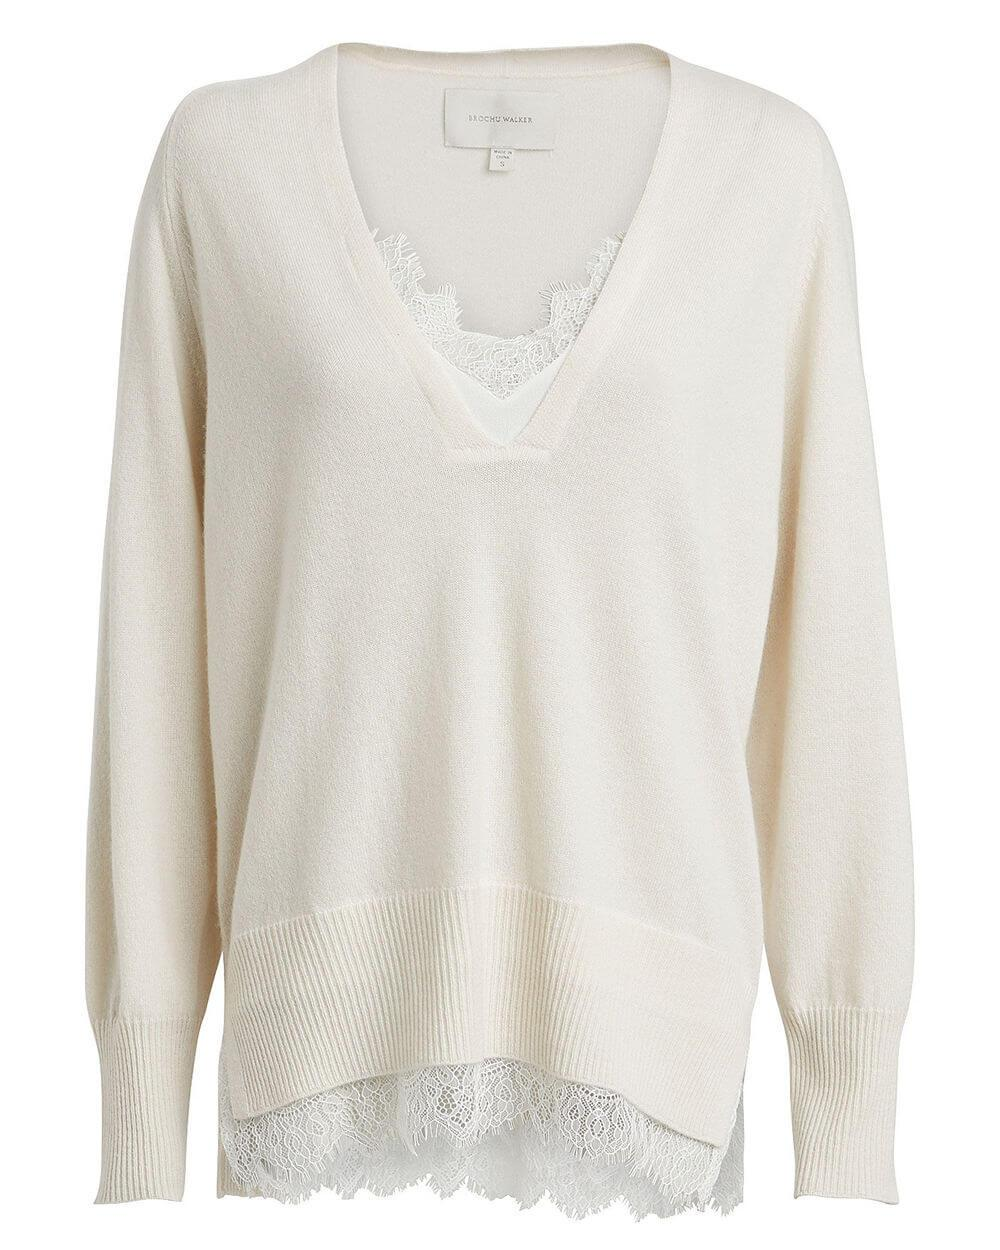 The Looker Layered Lace V-Neck Sweater